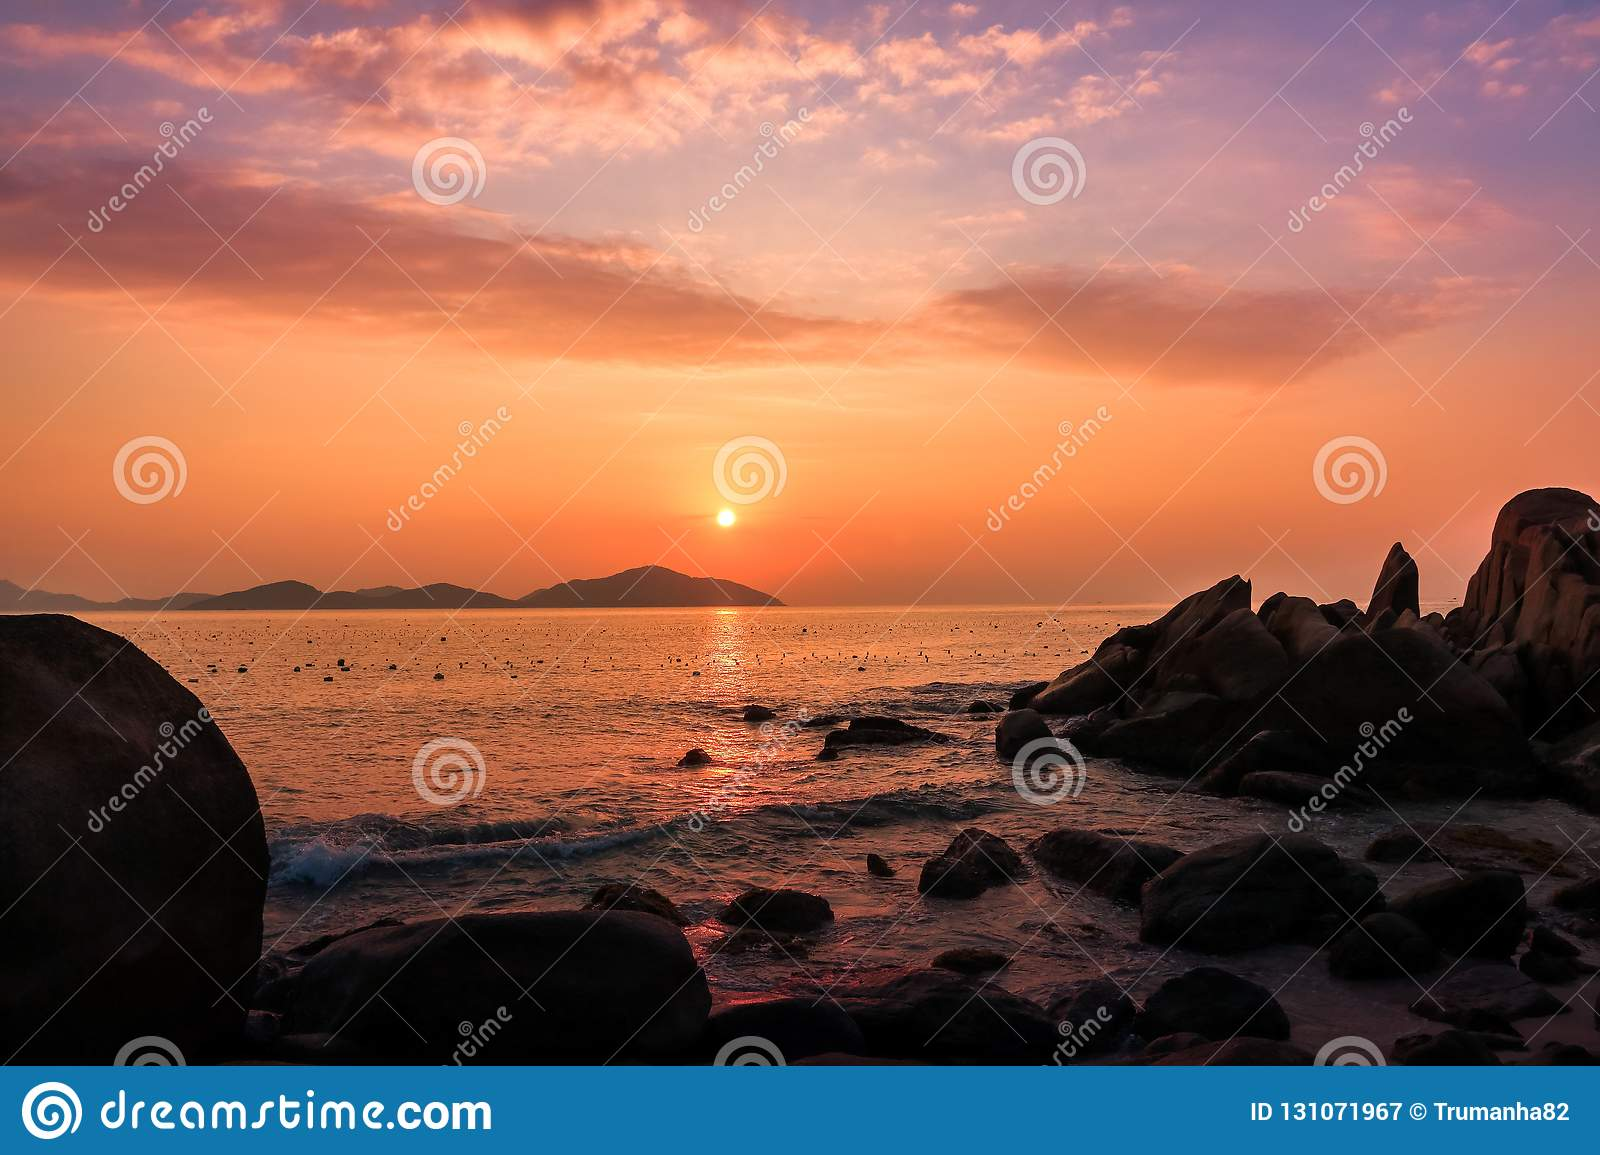 Nature Seascape with Boulders, Islands and Waves at Gorgeous Orange Sunrise